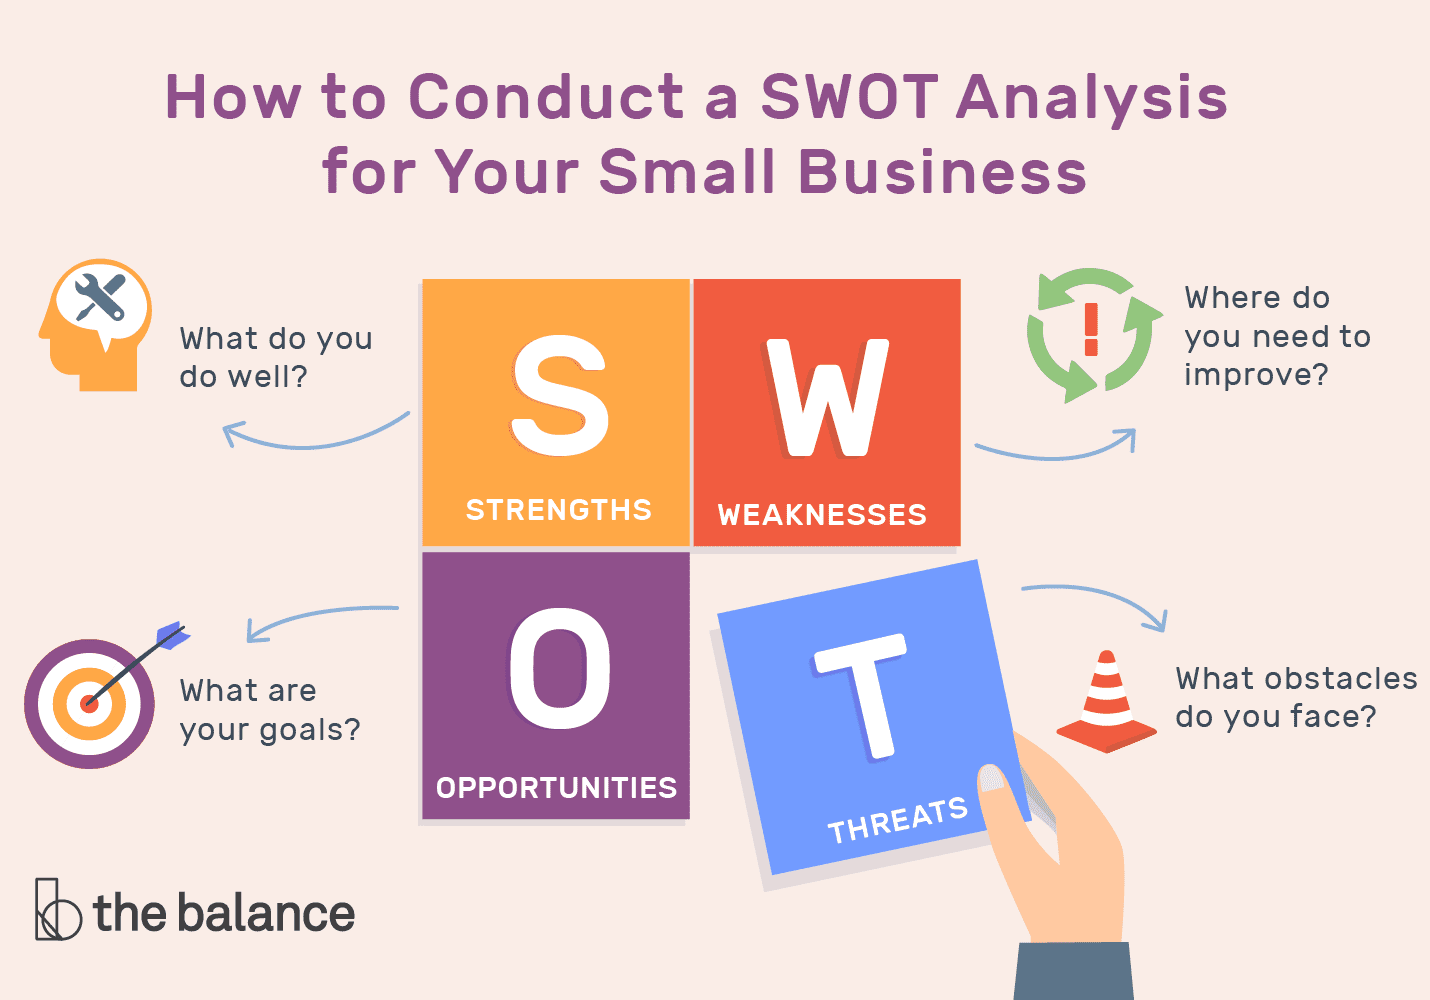 swot-analysis-for-small-business-2951706-v02-5b3b809dc9e77c001afe8f7e